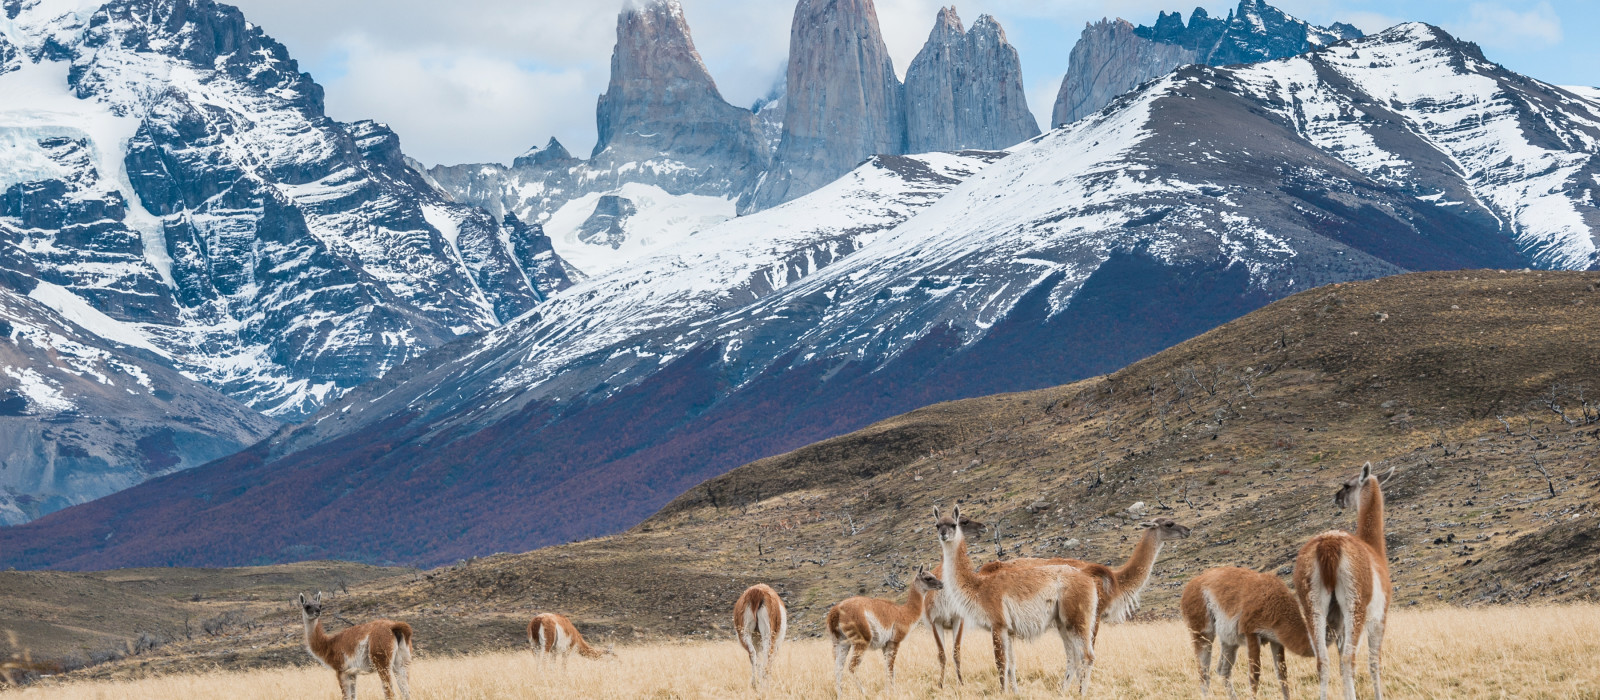 Guanacos in Torres del Paine National Park in Patagonia, Chile